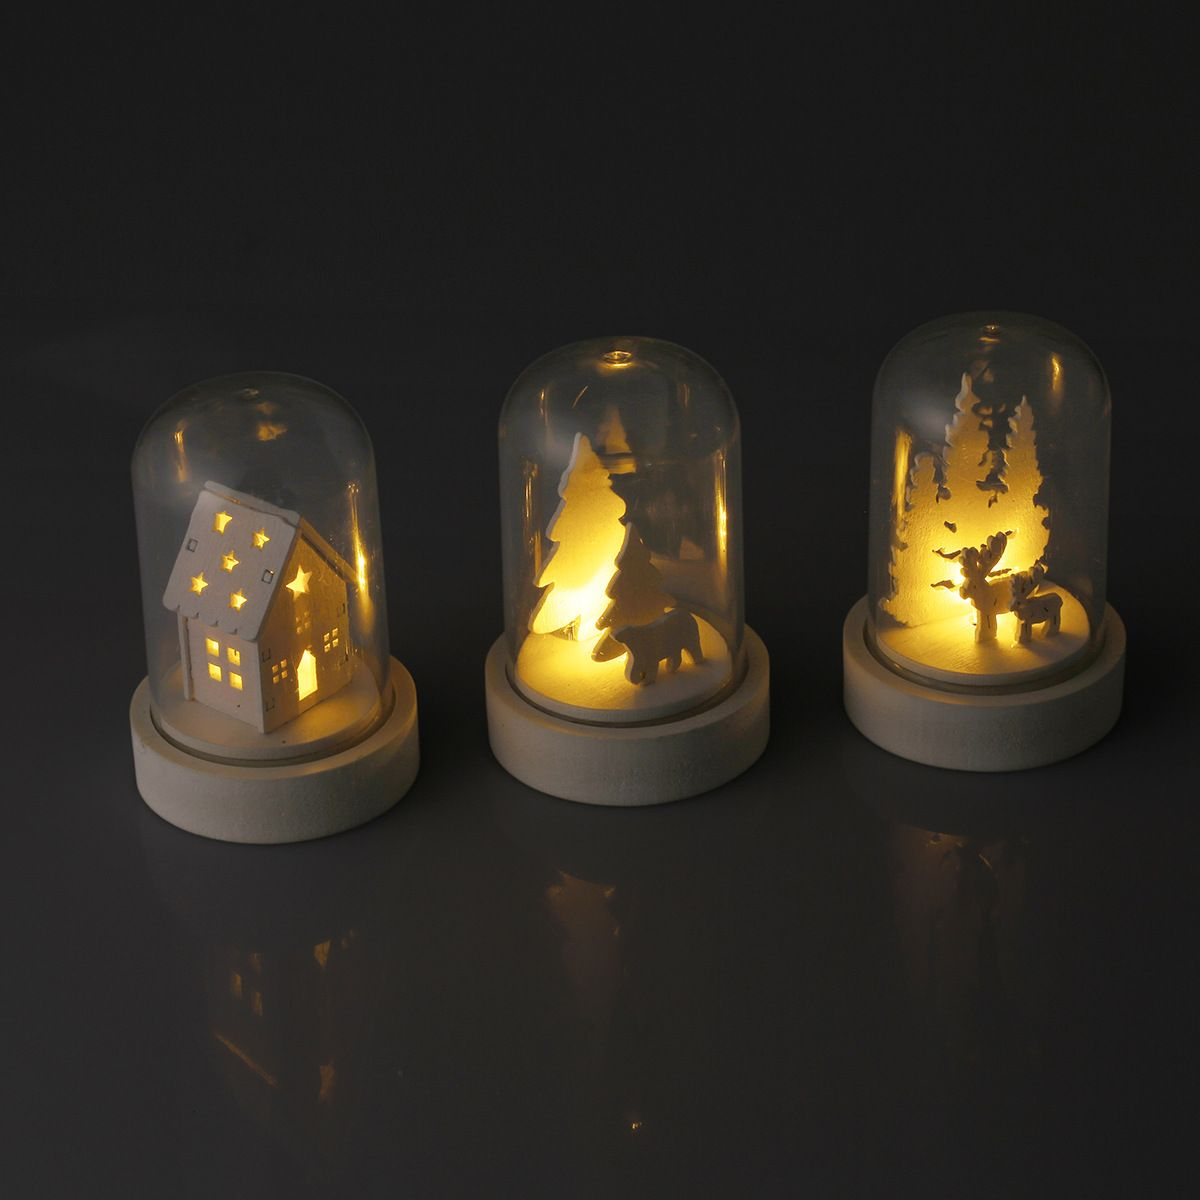 Battery Operated Mini Light Up Dome Assorted Kmart Xmas Lights Christmas Apartment Novelty Lamp